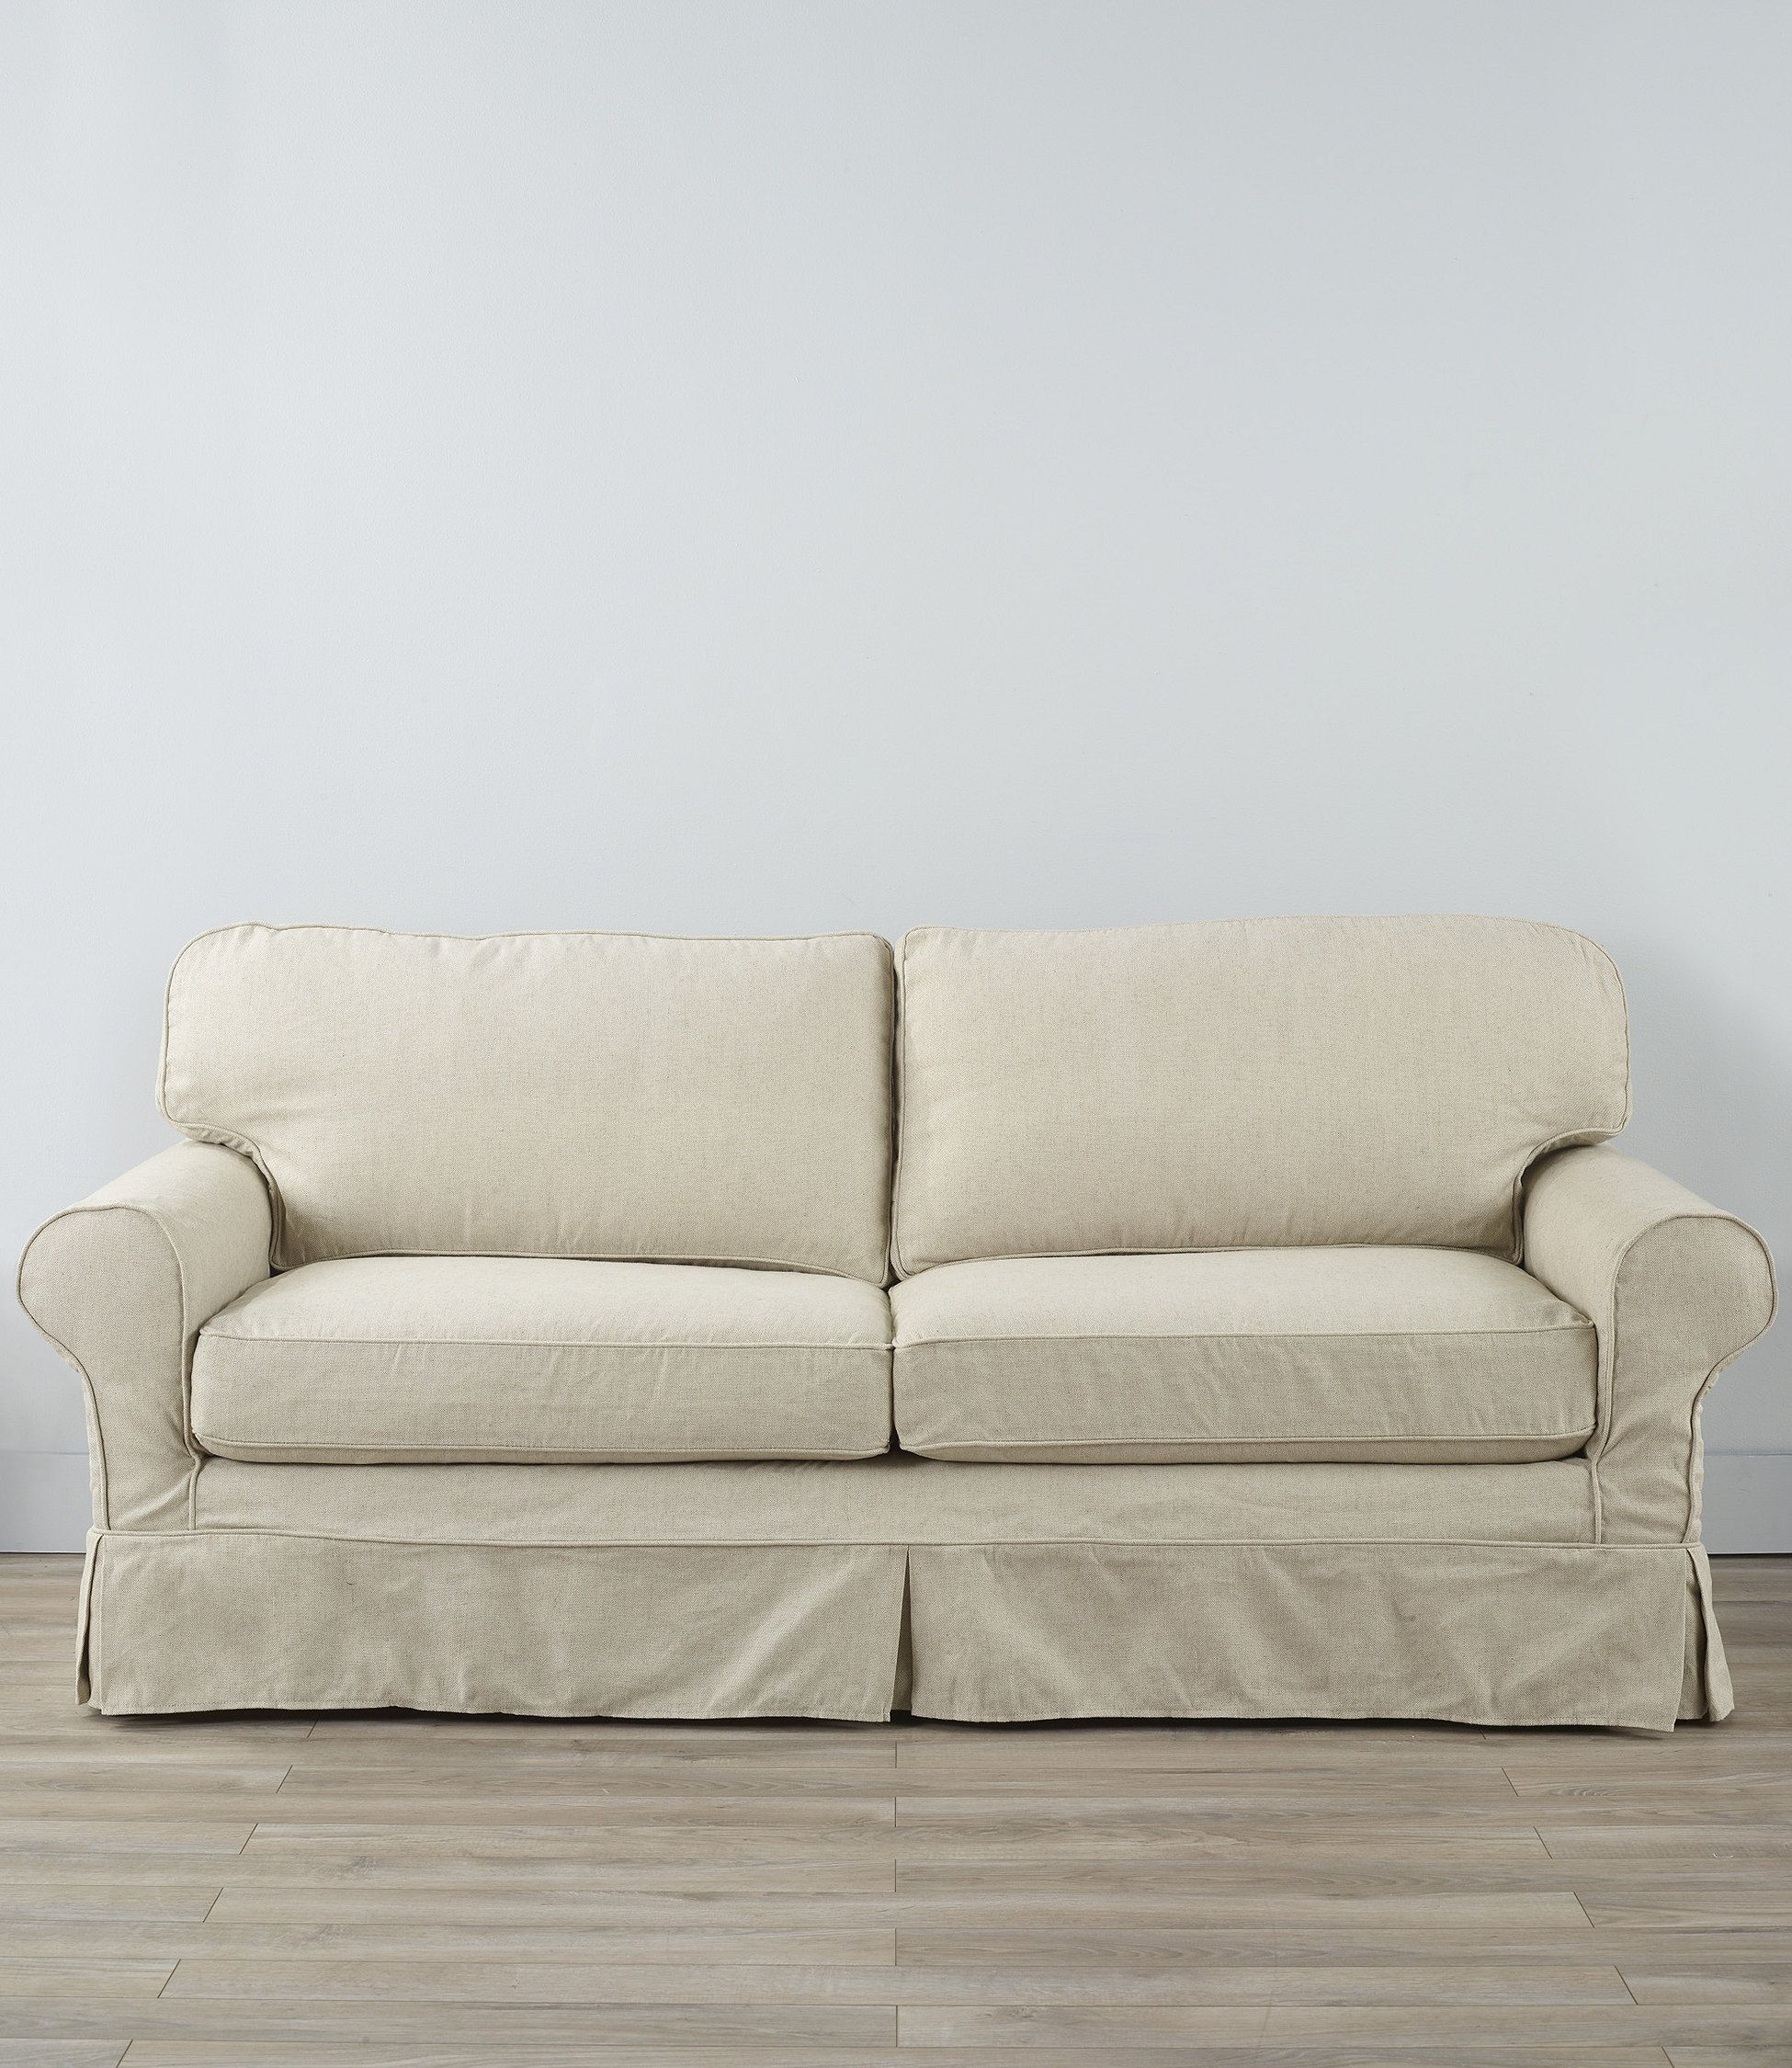 Pine Point Sleeper Sofa and Slipcover in 2019 Slipcovers